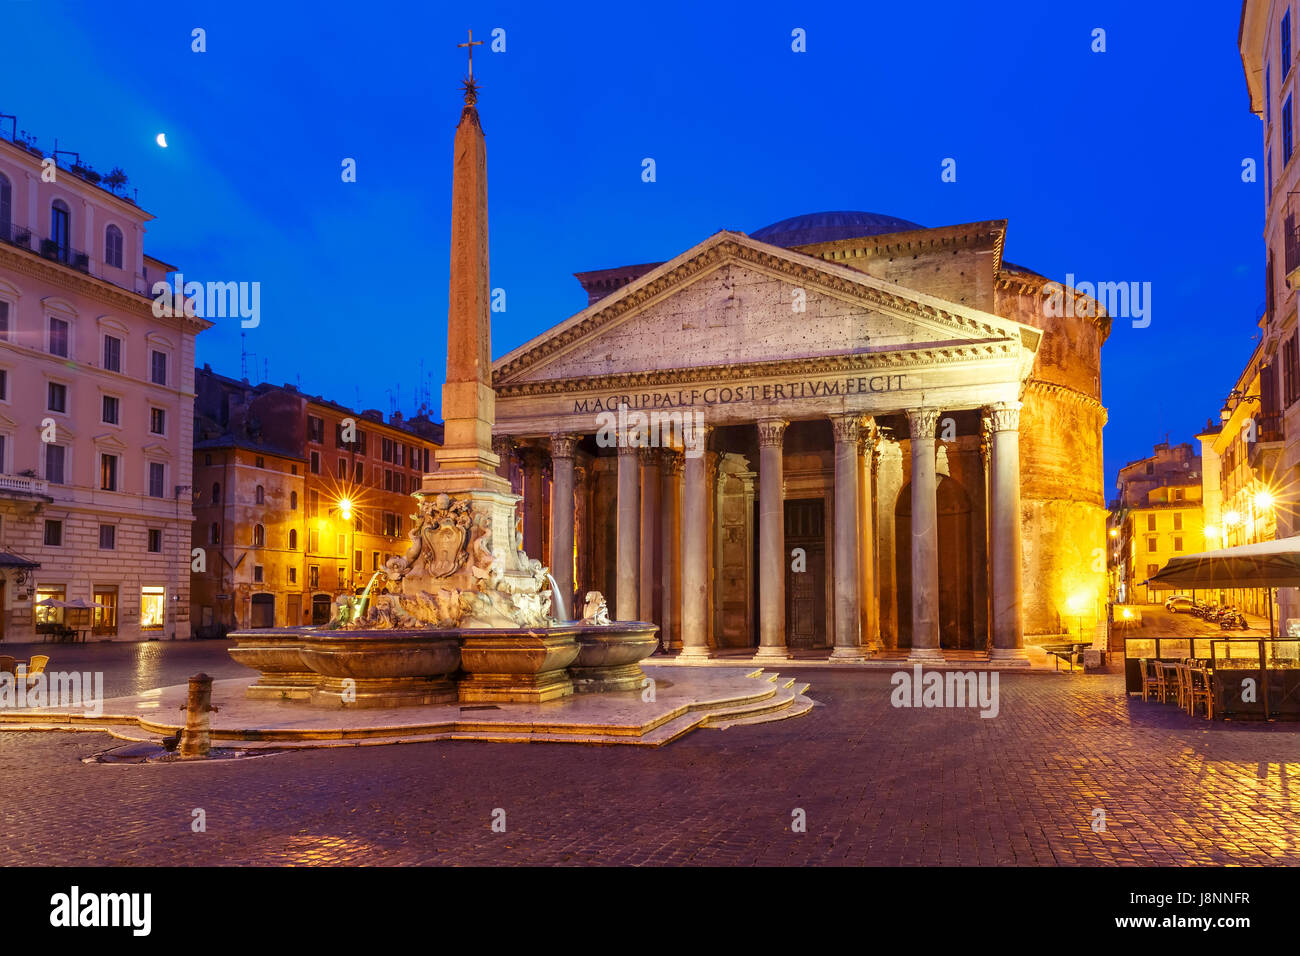 The Pantheon at night, Rome, Italy - Stock Image